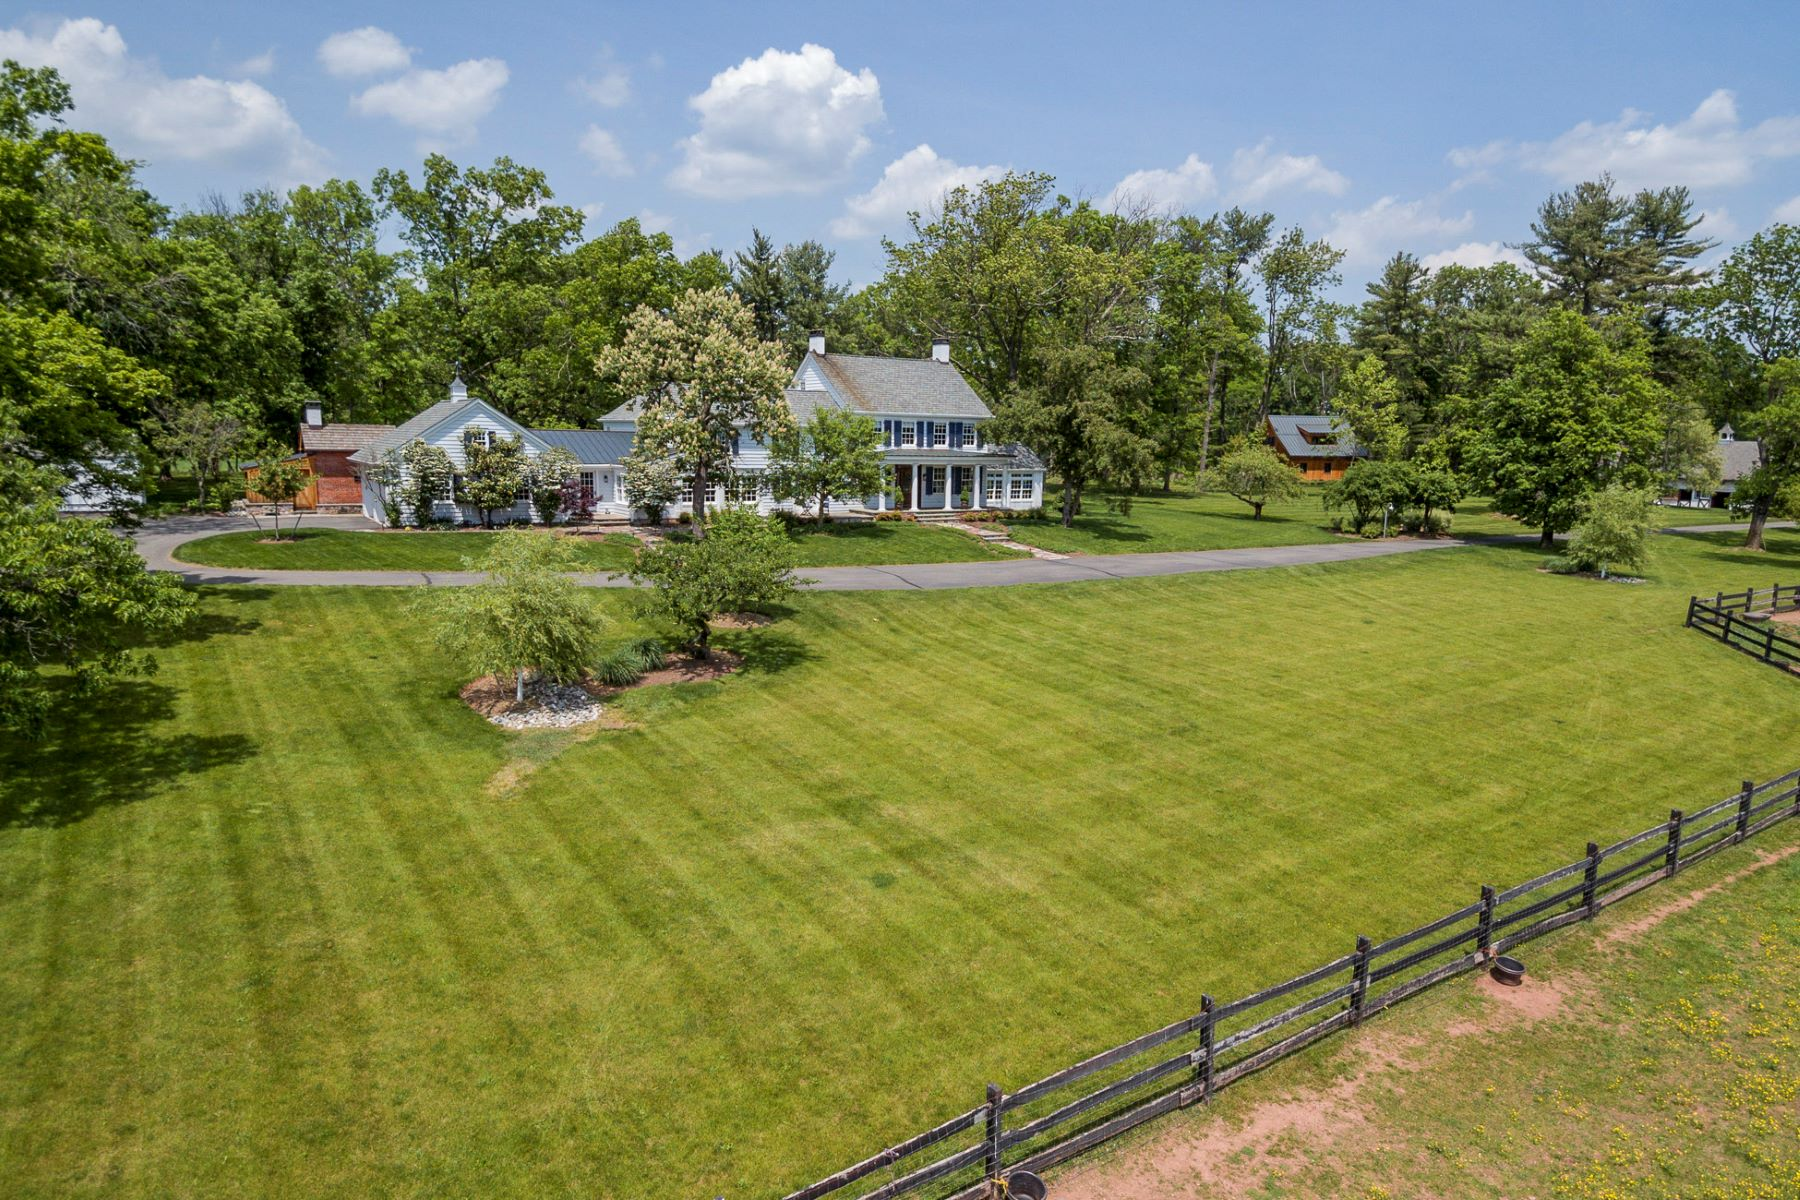 Single Family Homes für Verkauf beim Historic Farm Reimagined for the Modern Equestrian - Hopewell Township 266 Province Line Road, Skillman, New Jersey 08558 Vereinigte Staaten